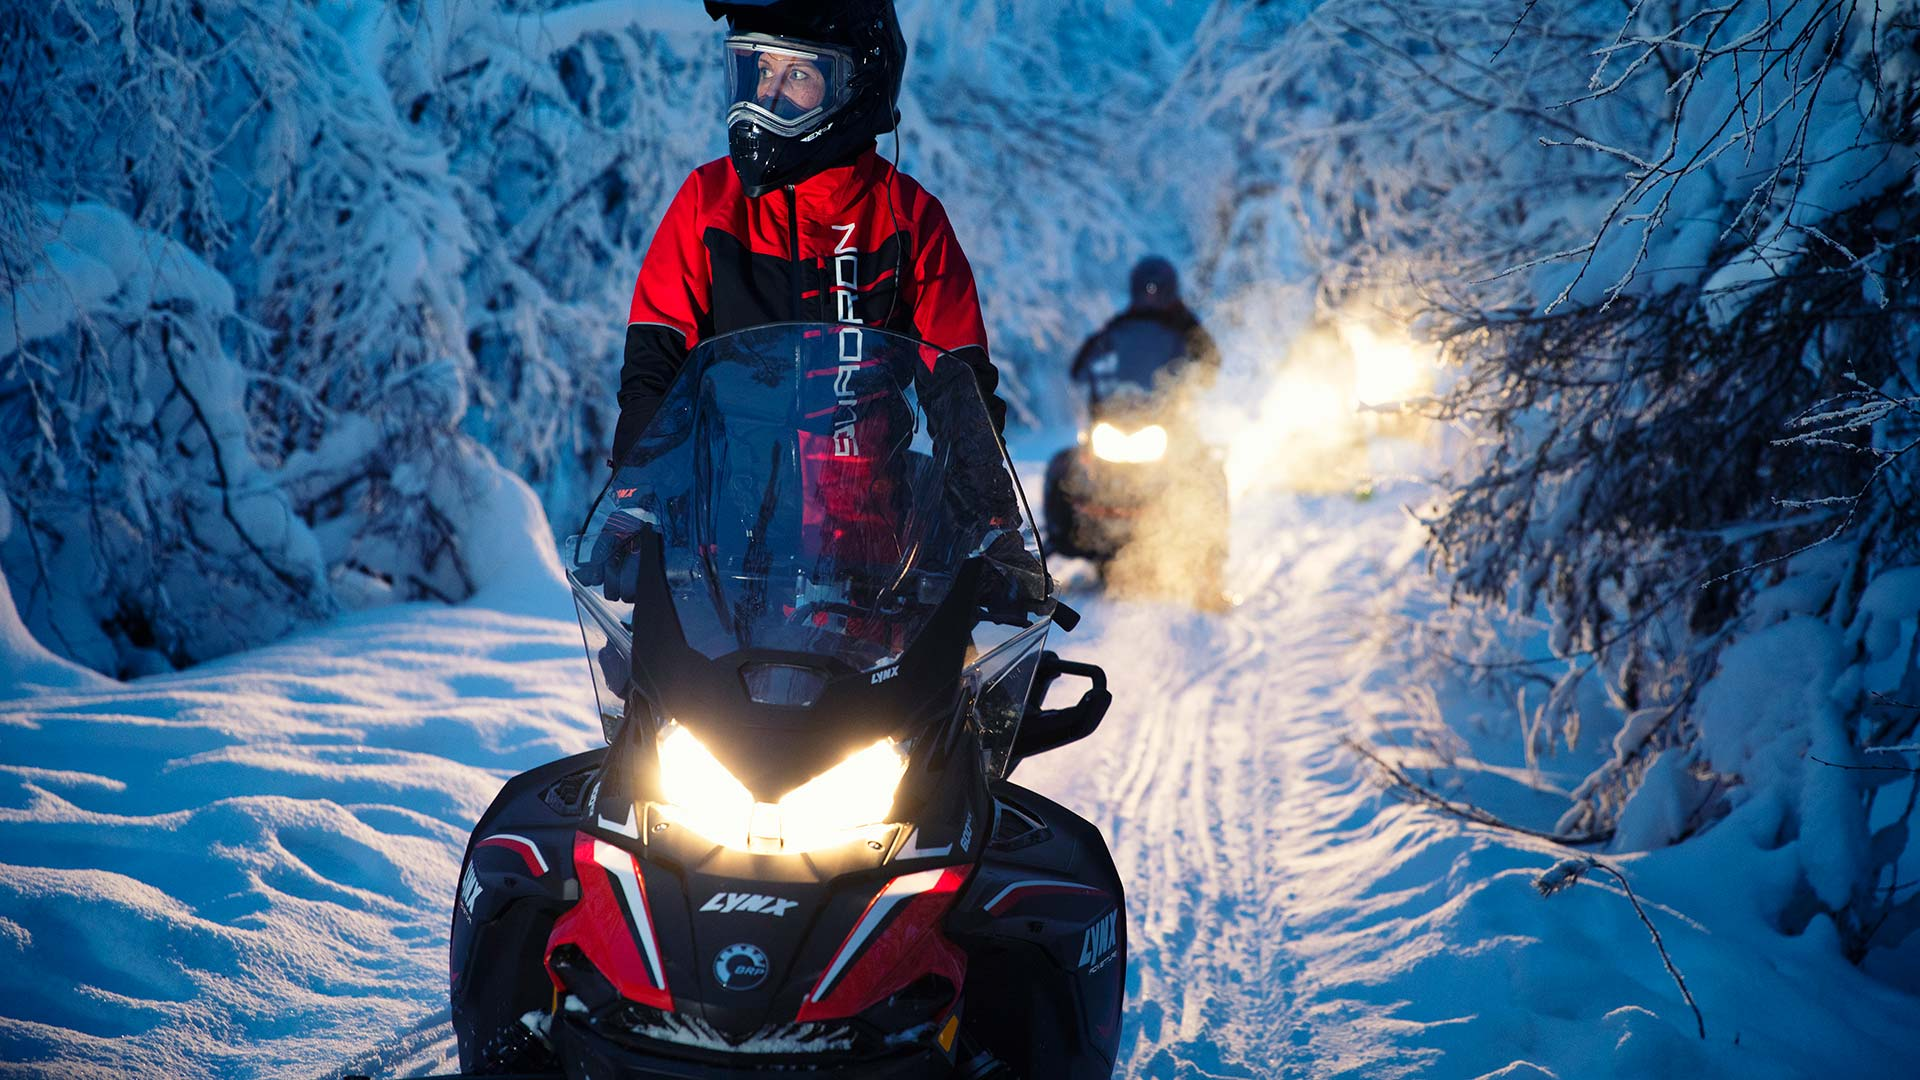 Lynx Adventure snowmobile riding in snowy forest